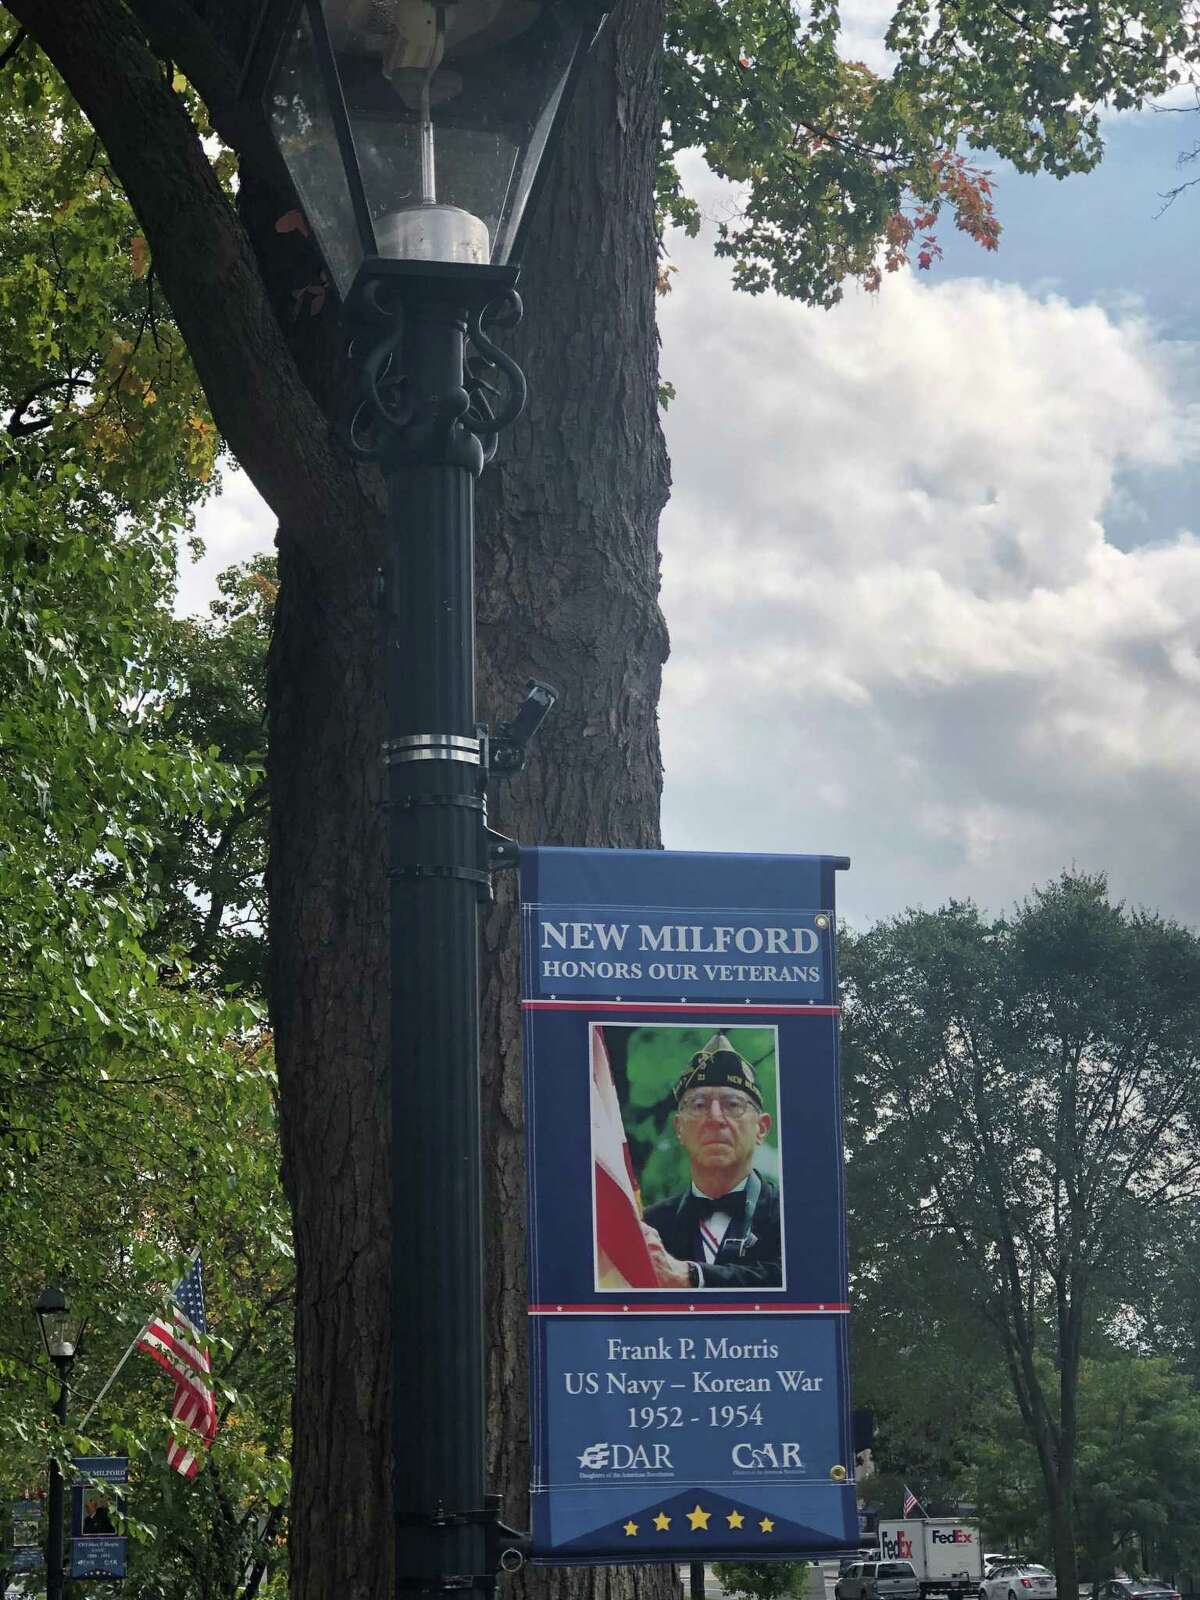 Residents can learn more about New Milford veterans from the banners.